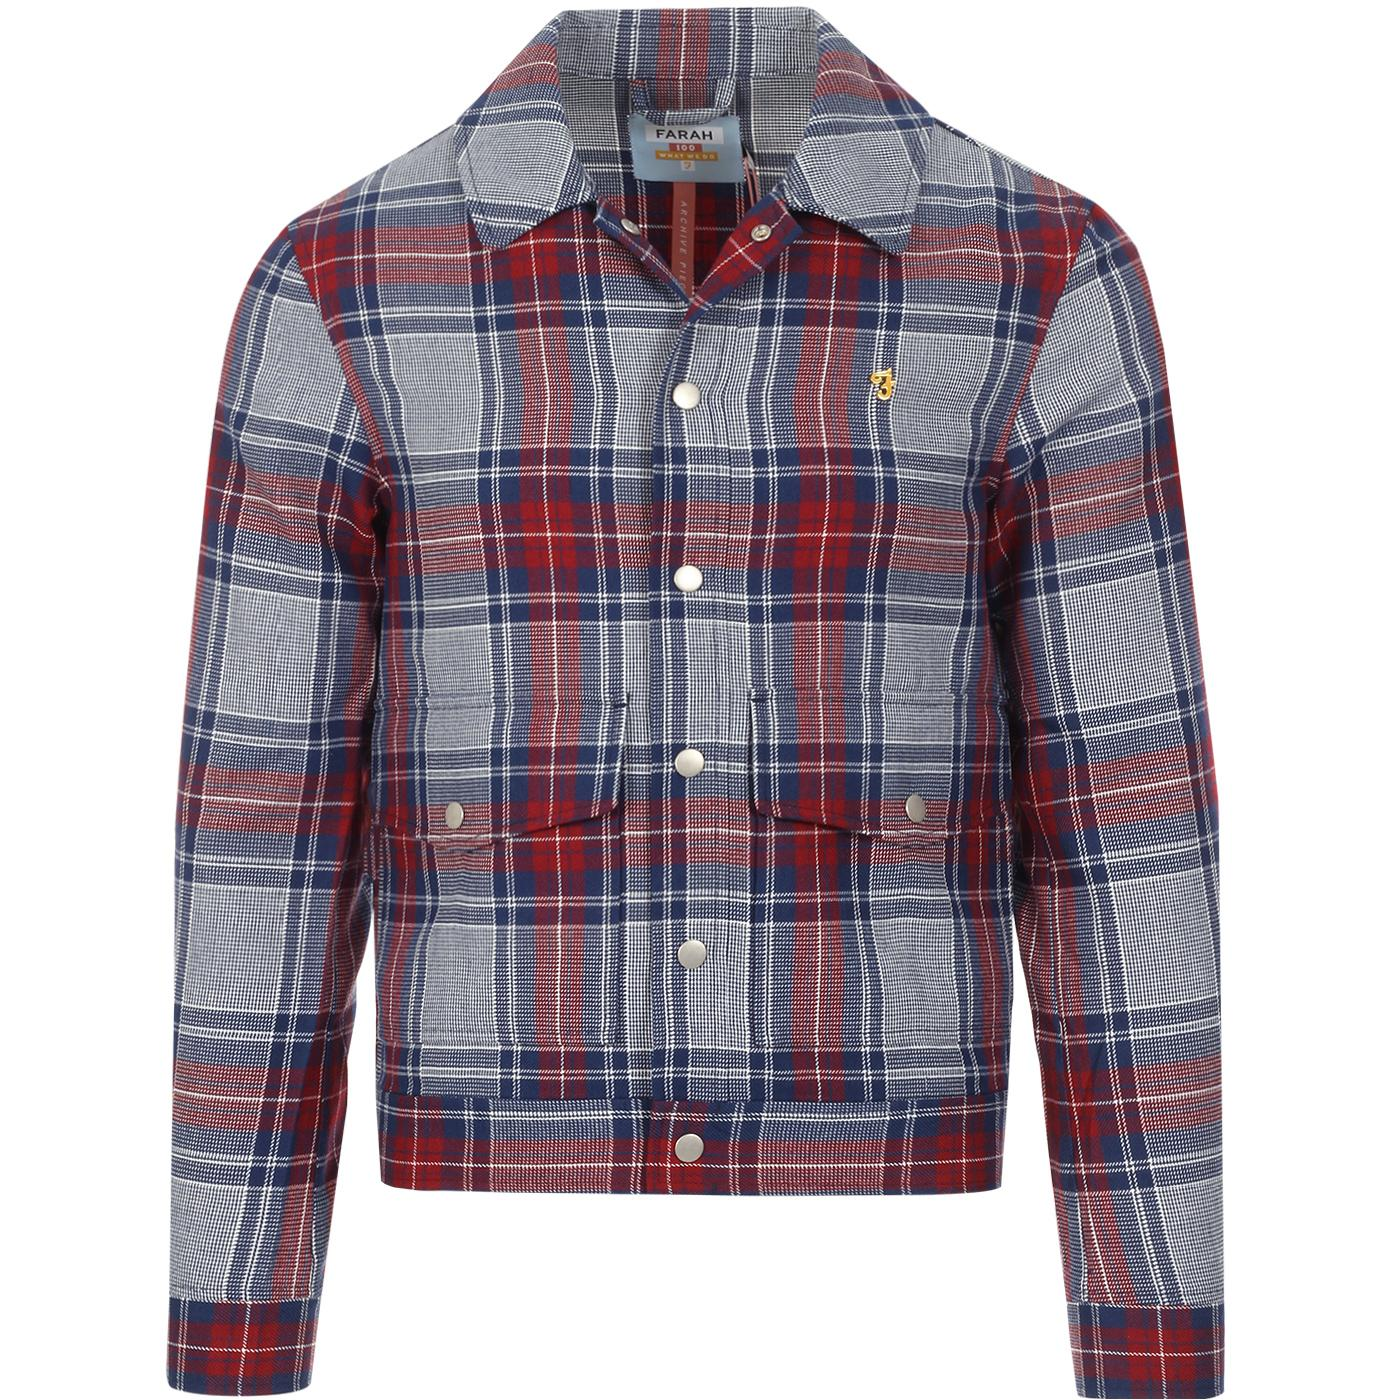 Wilcox FARAH 100 Mod Ivy Look Check Trucker Jacket